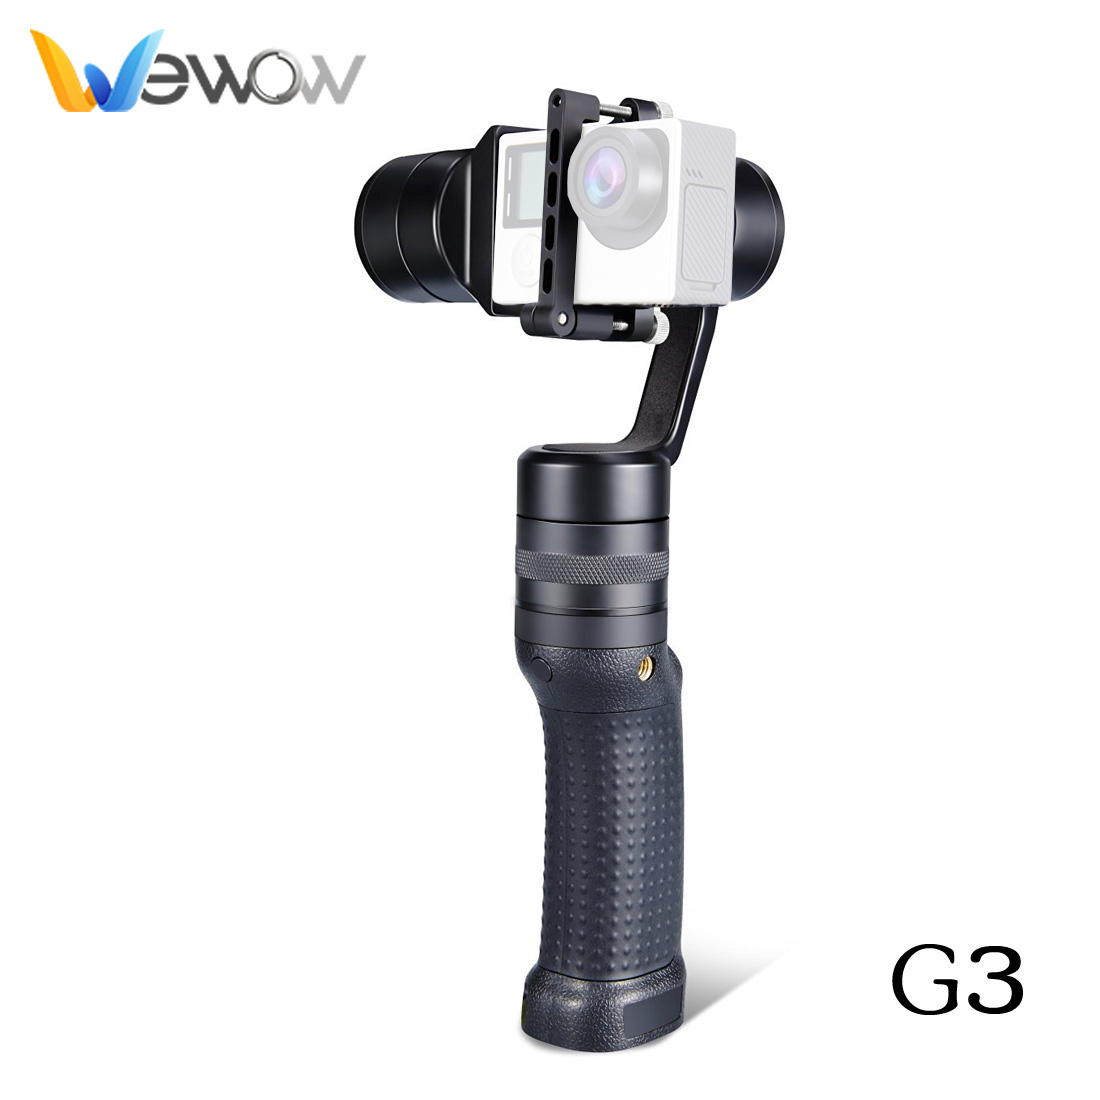 Wewow G3 3 Axis Brushless Gimbal Stabilizer for Gopro3/3+/4